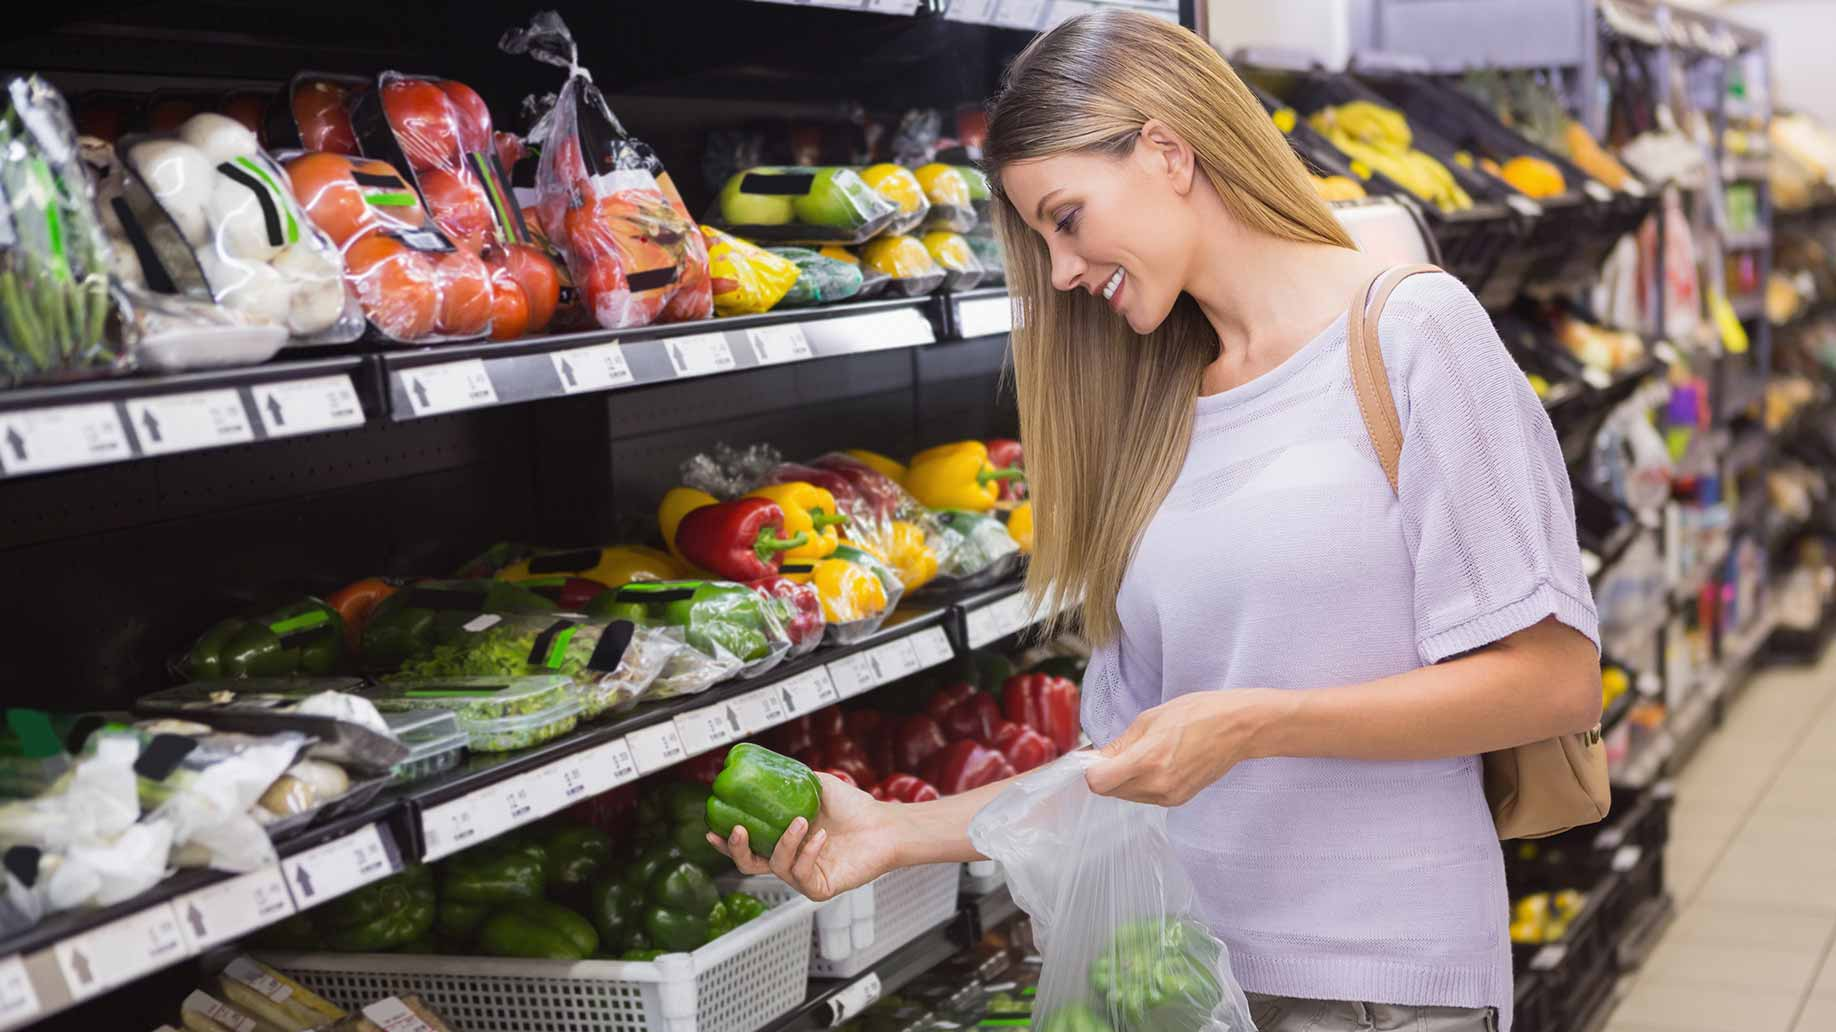 woman buying fruits and vegetables at the grocery store